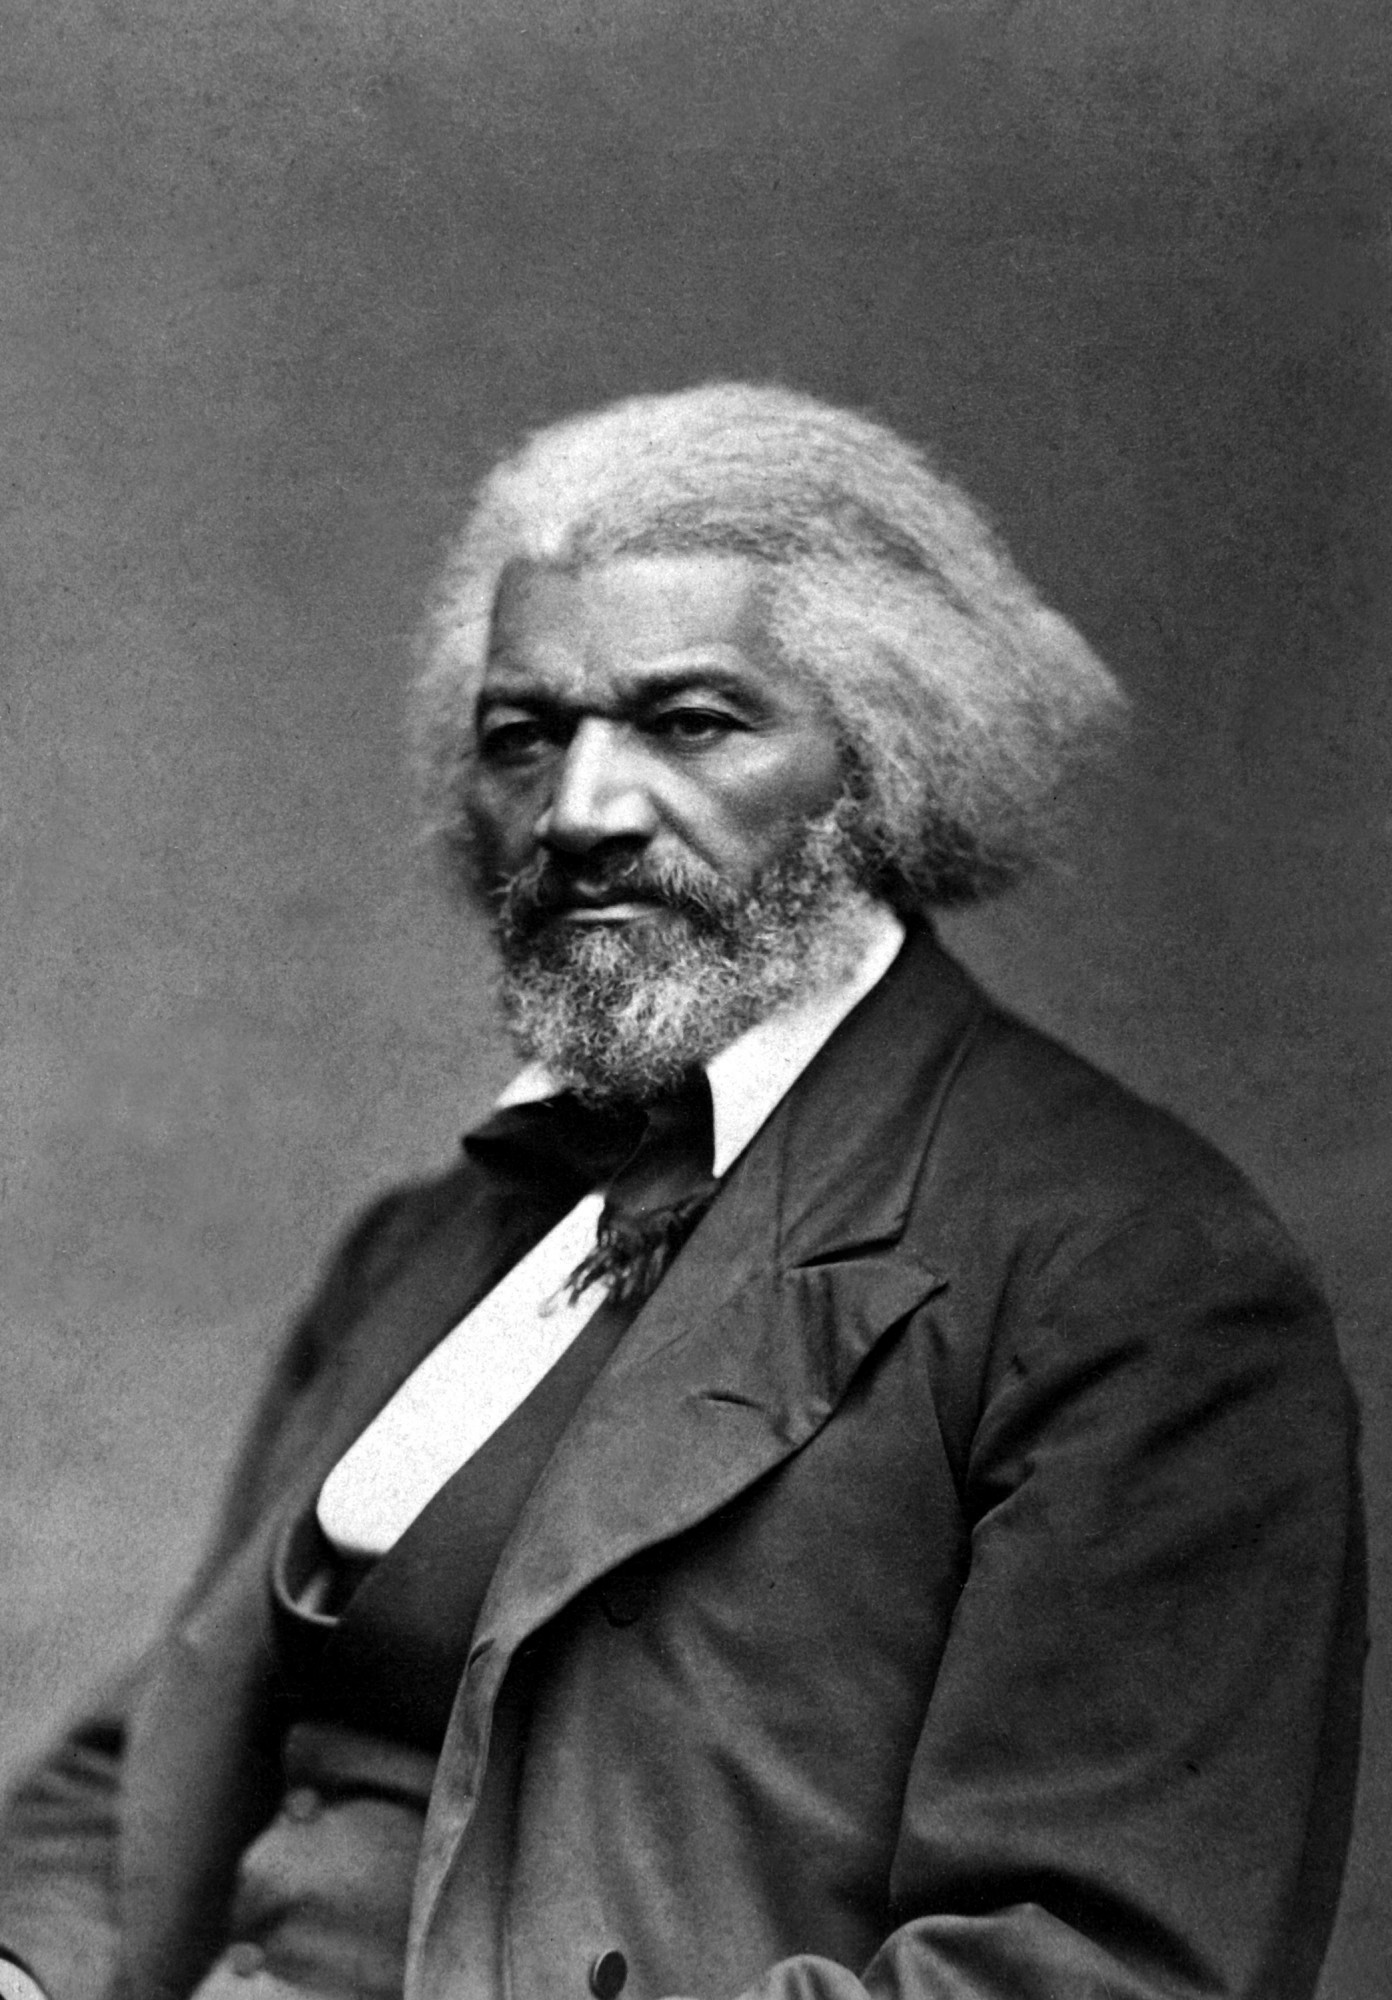 frederick douglass avoiding the whip Remind students that in the people could fly, the overseer whips the young   remind them that this event was the focus of frederick douglass: the last day  of  he would sometimes crawl on his hands and knees to avoid detection, and  all.